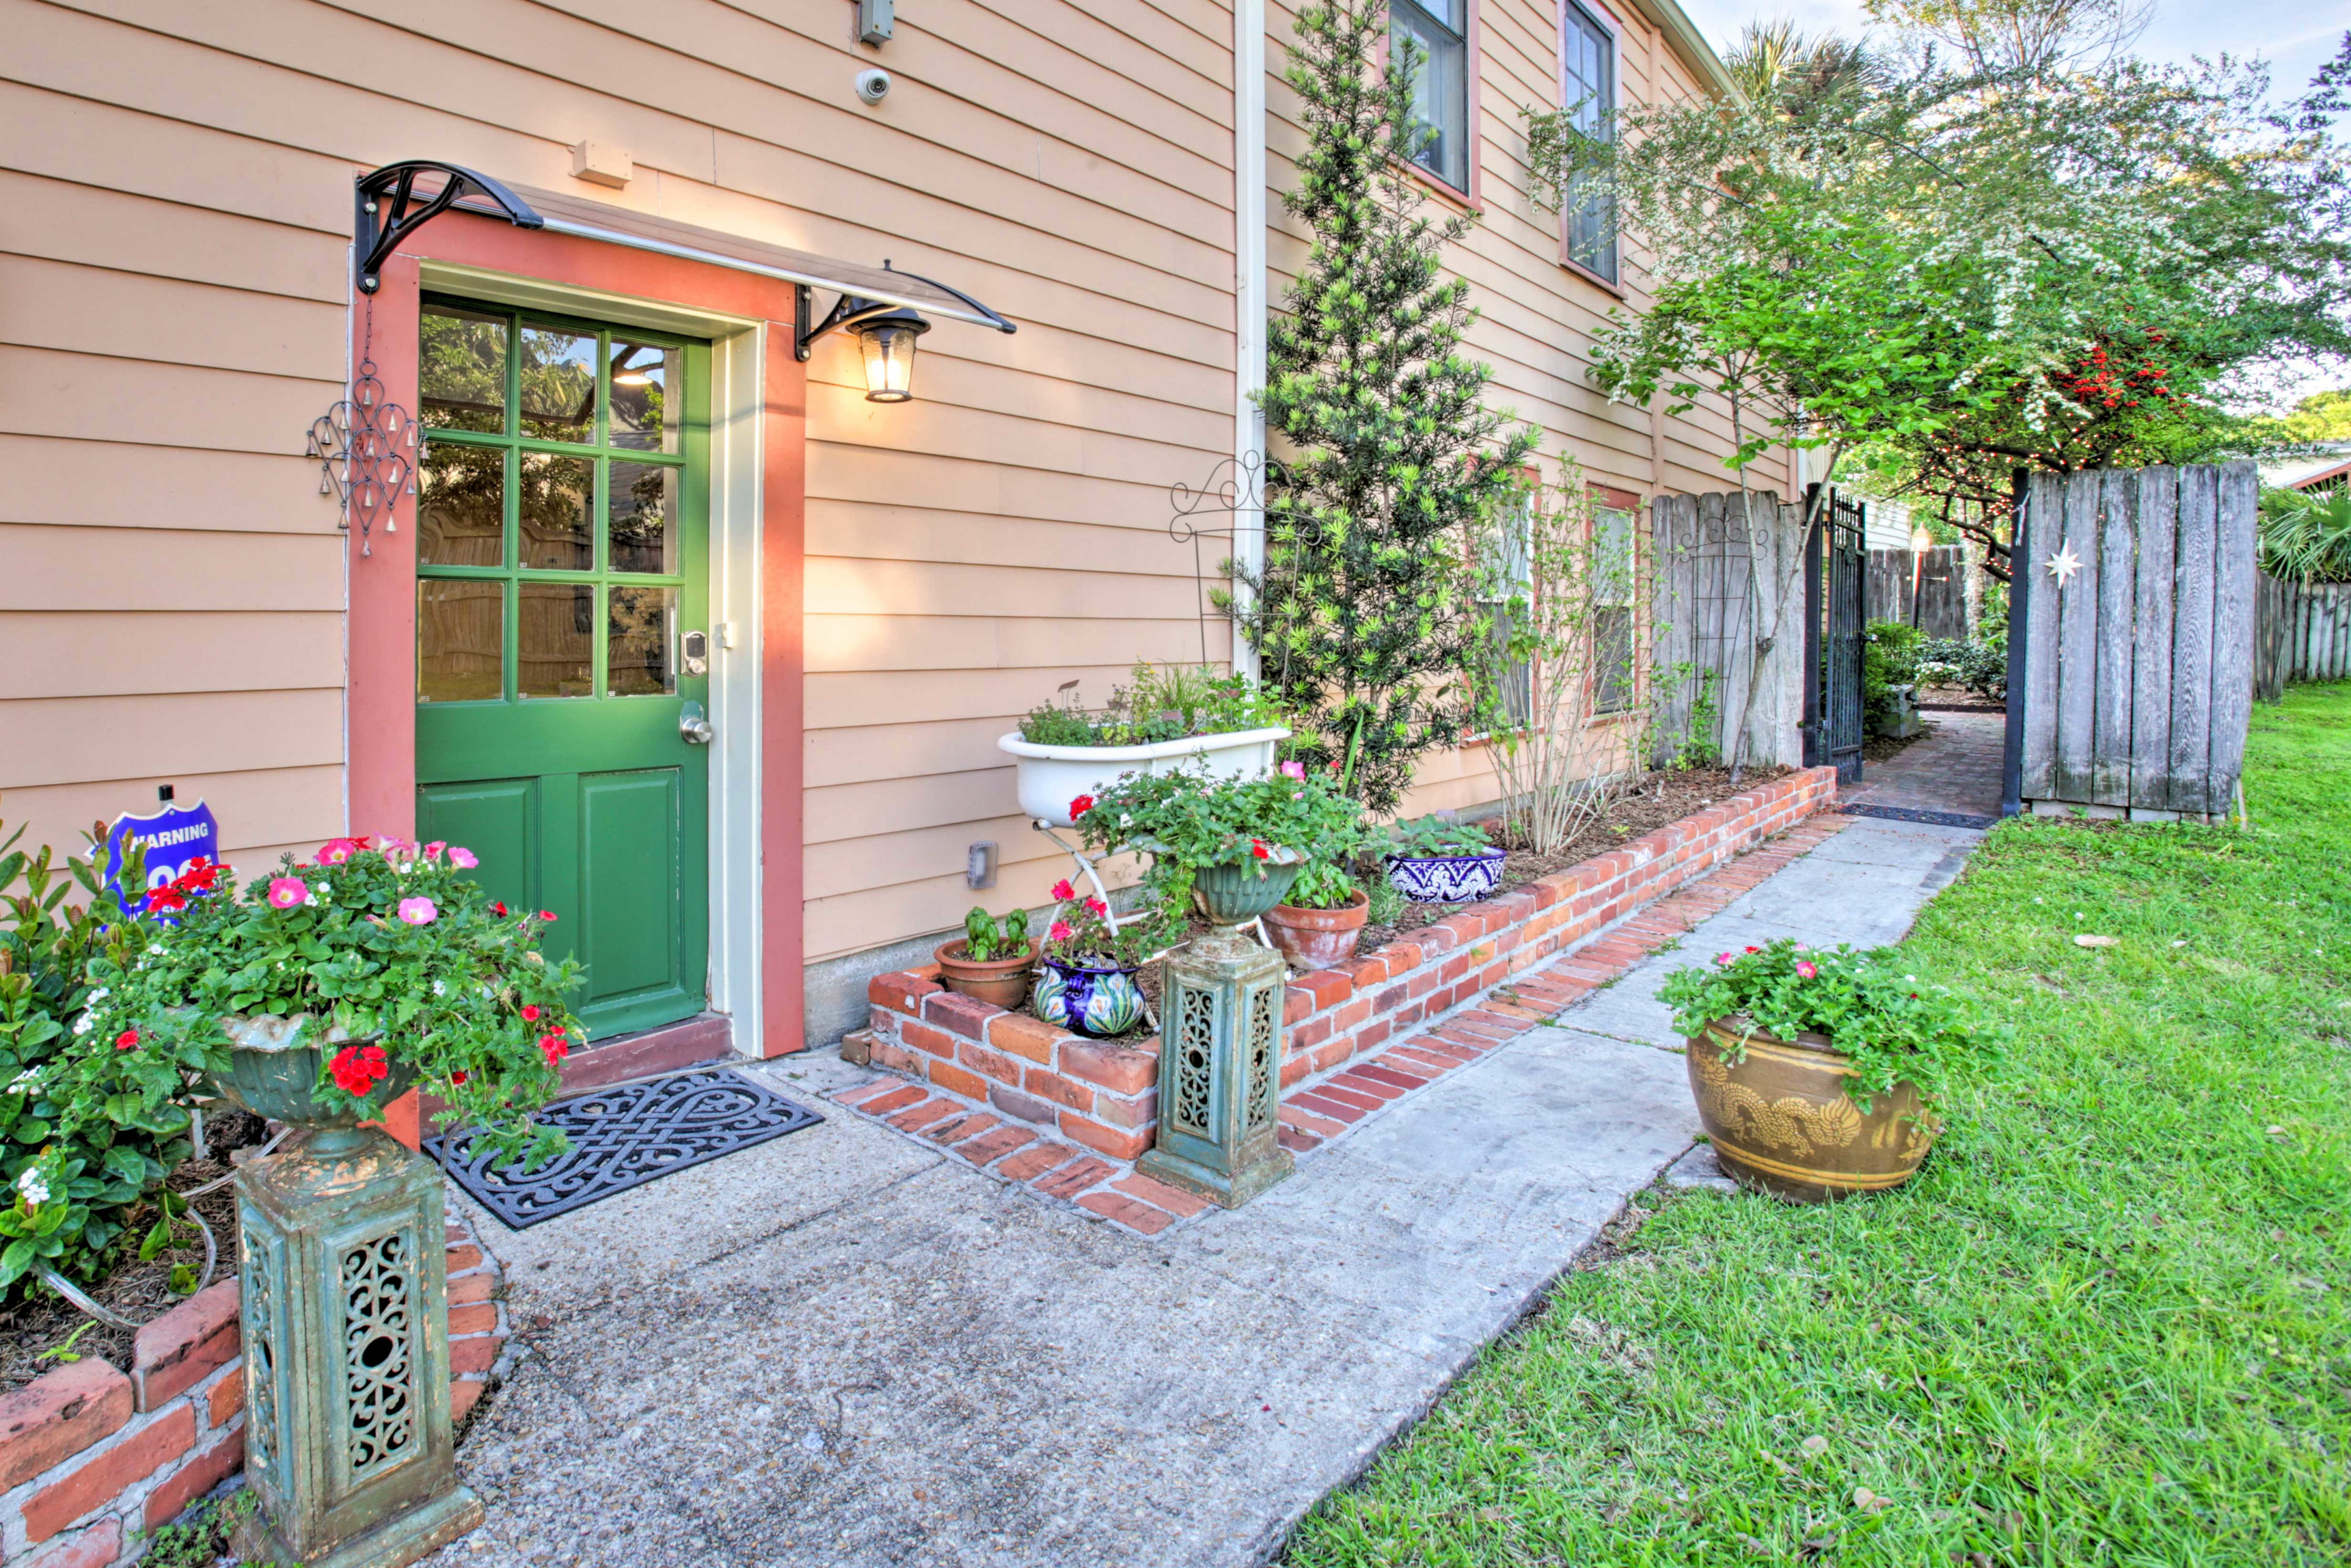 Step outside to enjoy the warm New Orleans weather!